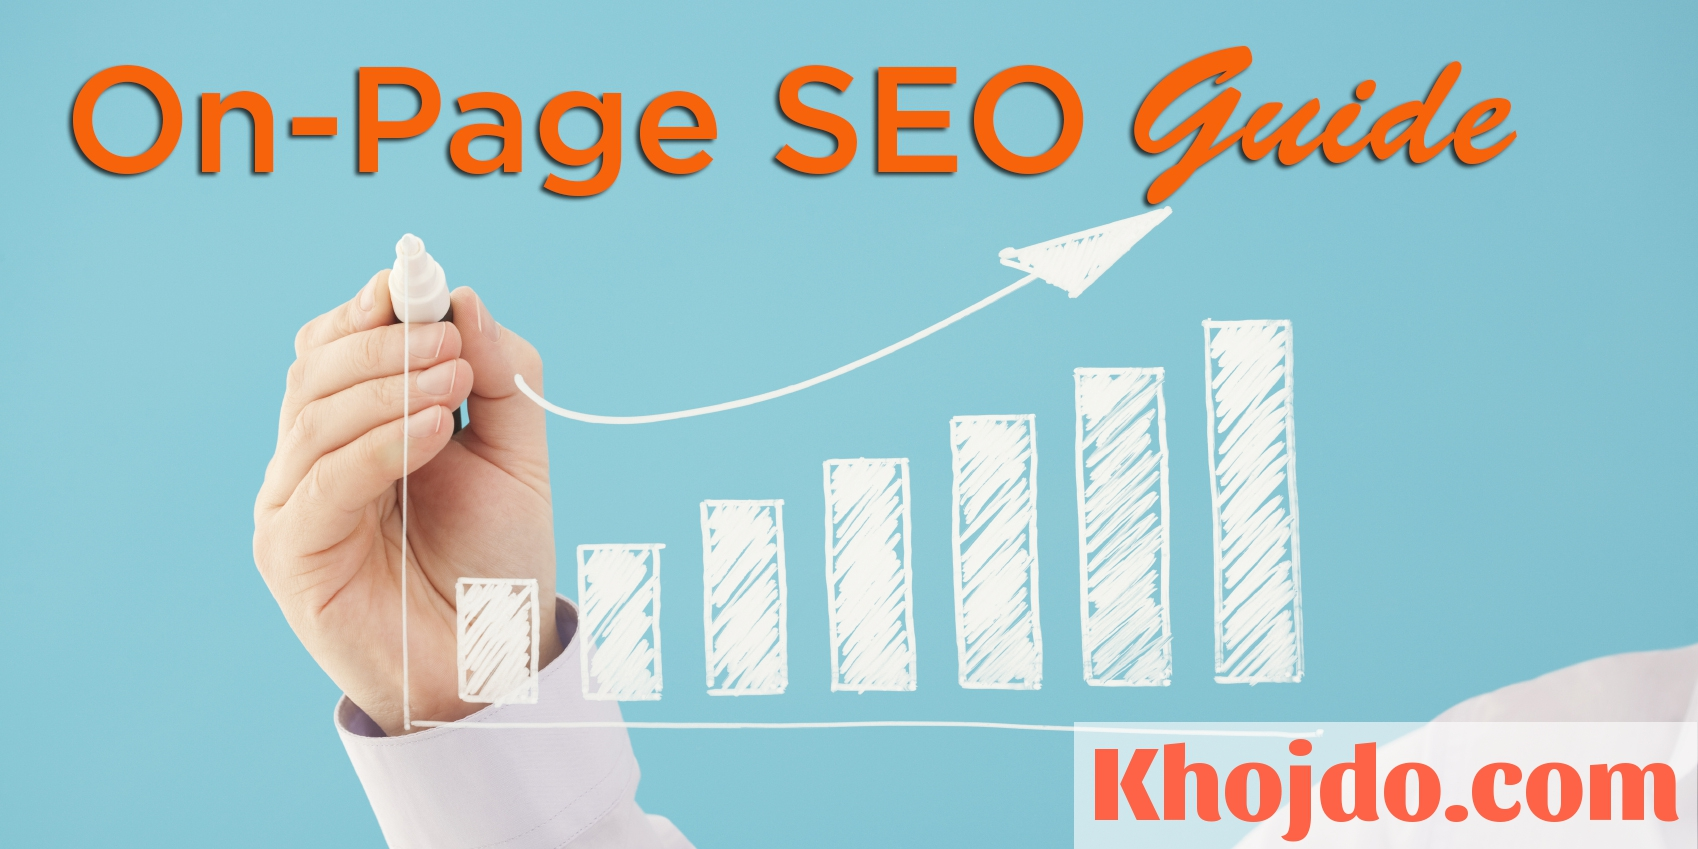 What On-Site SEO Can I Undertake to rank better in search engine